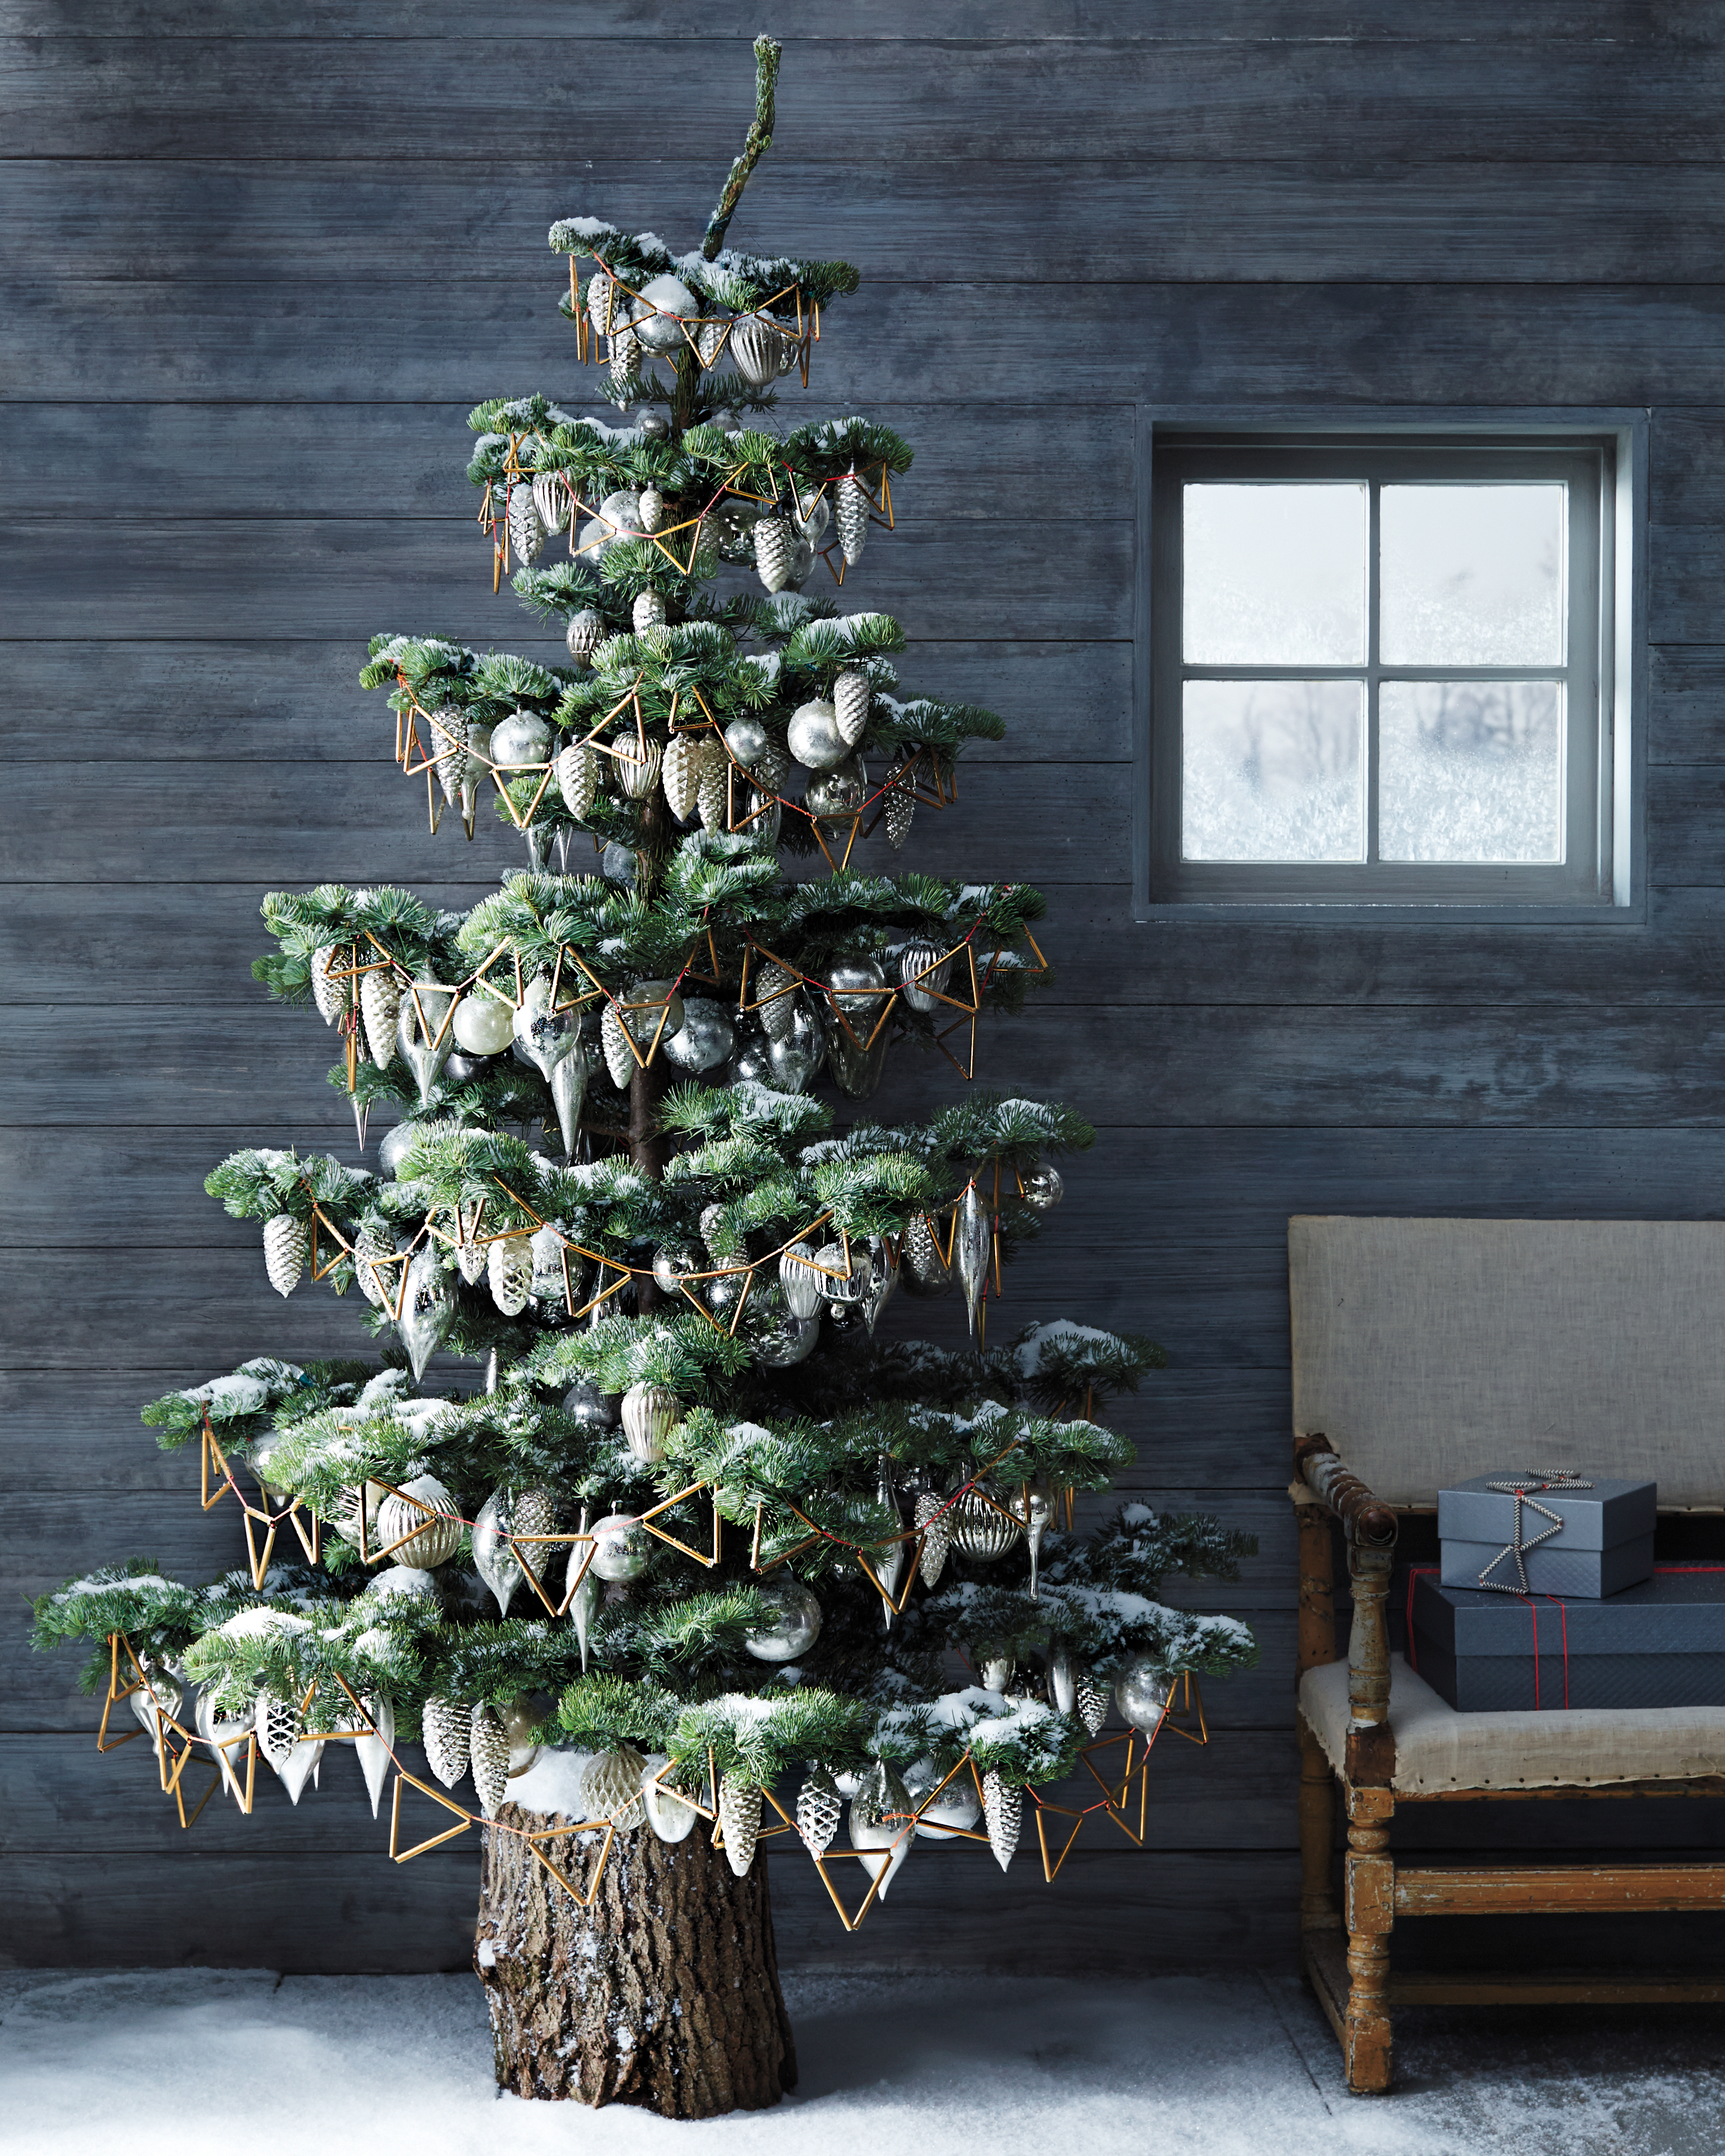 Christmas tree decorated with geometric brass hardware